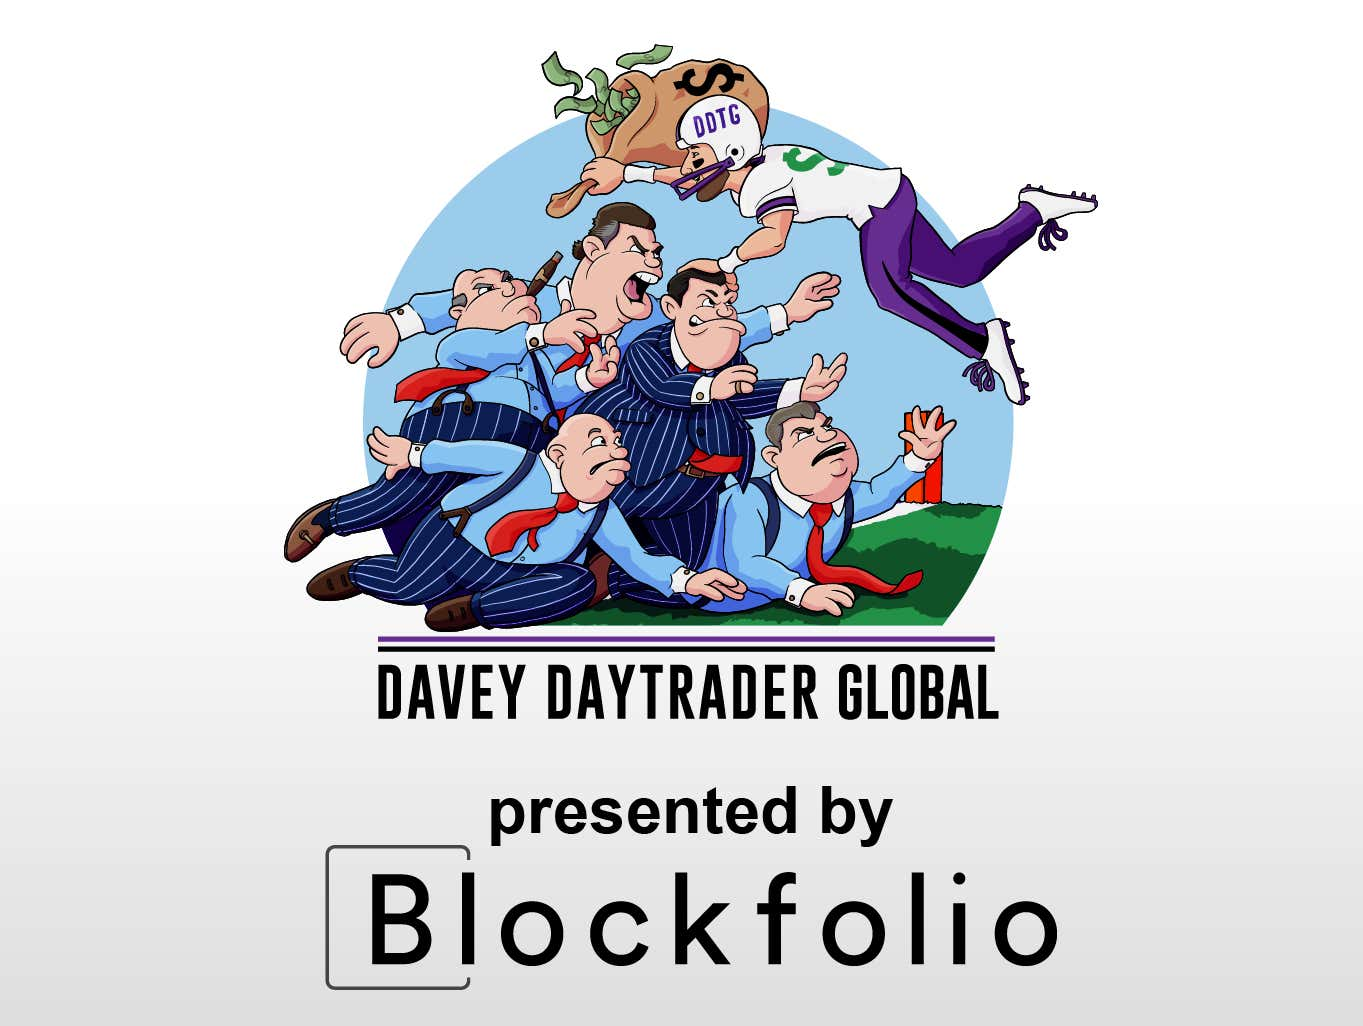 Davey Day Trader presented by Blockfolio - April 13, 2021